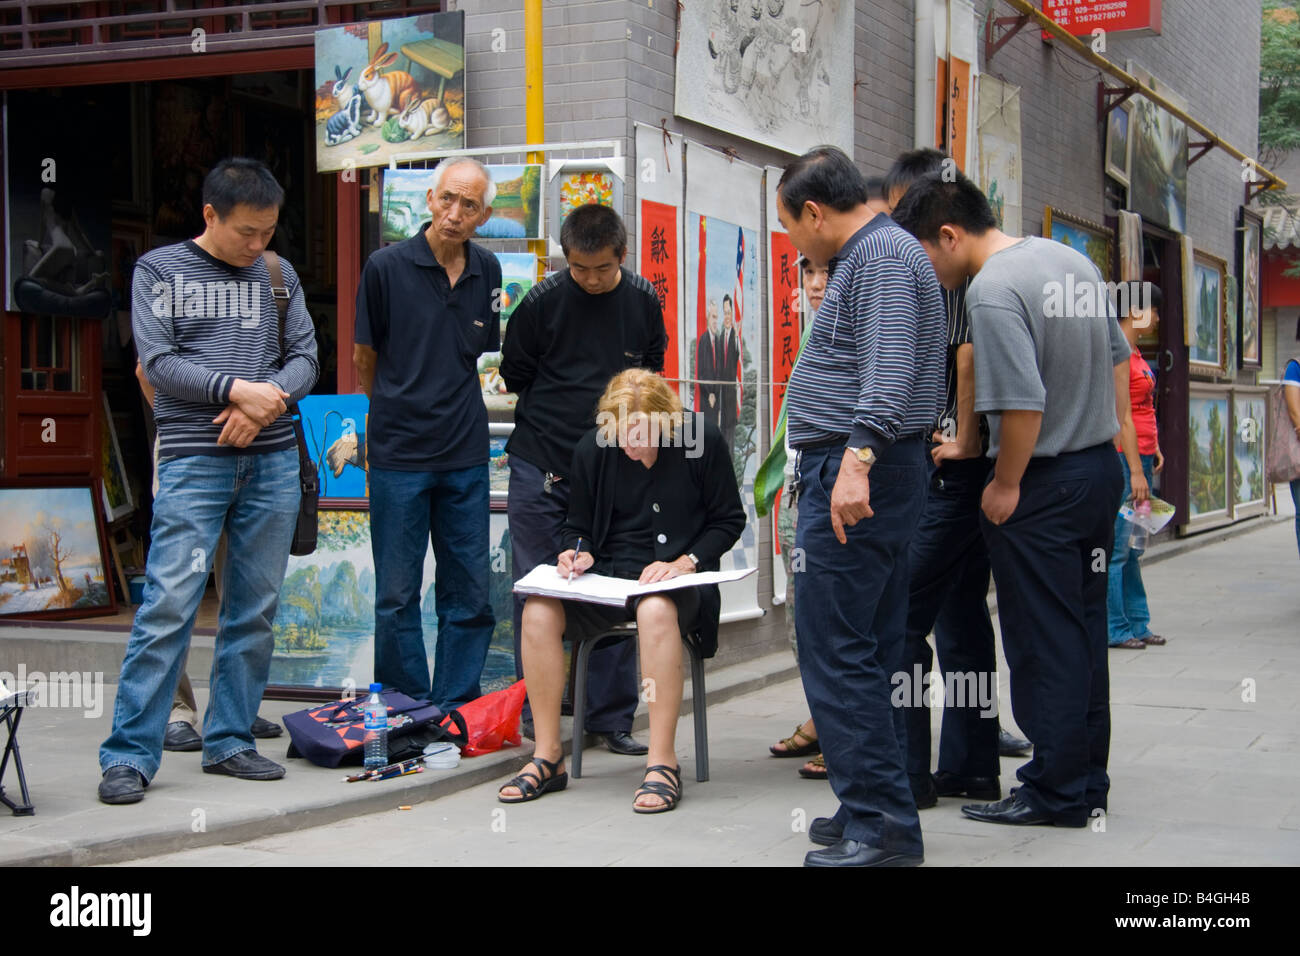 Onlookers watch a street artist in Xian , China - Stock Image